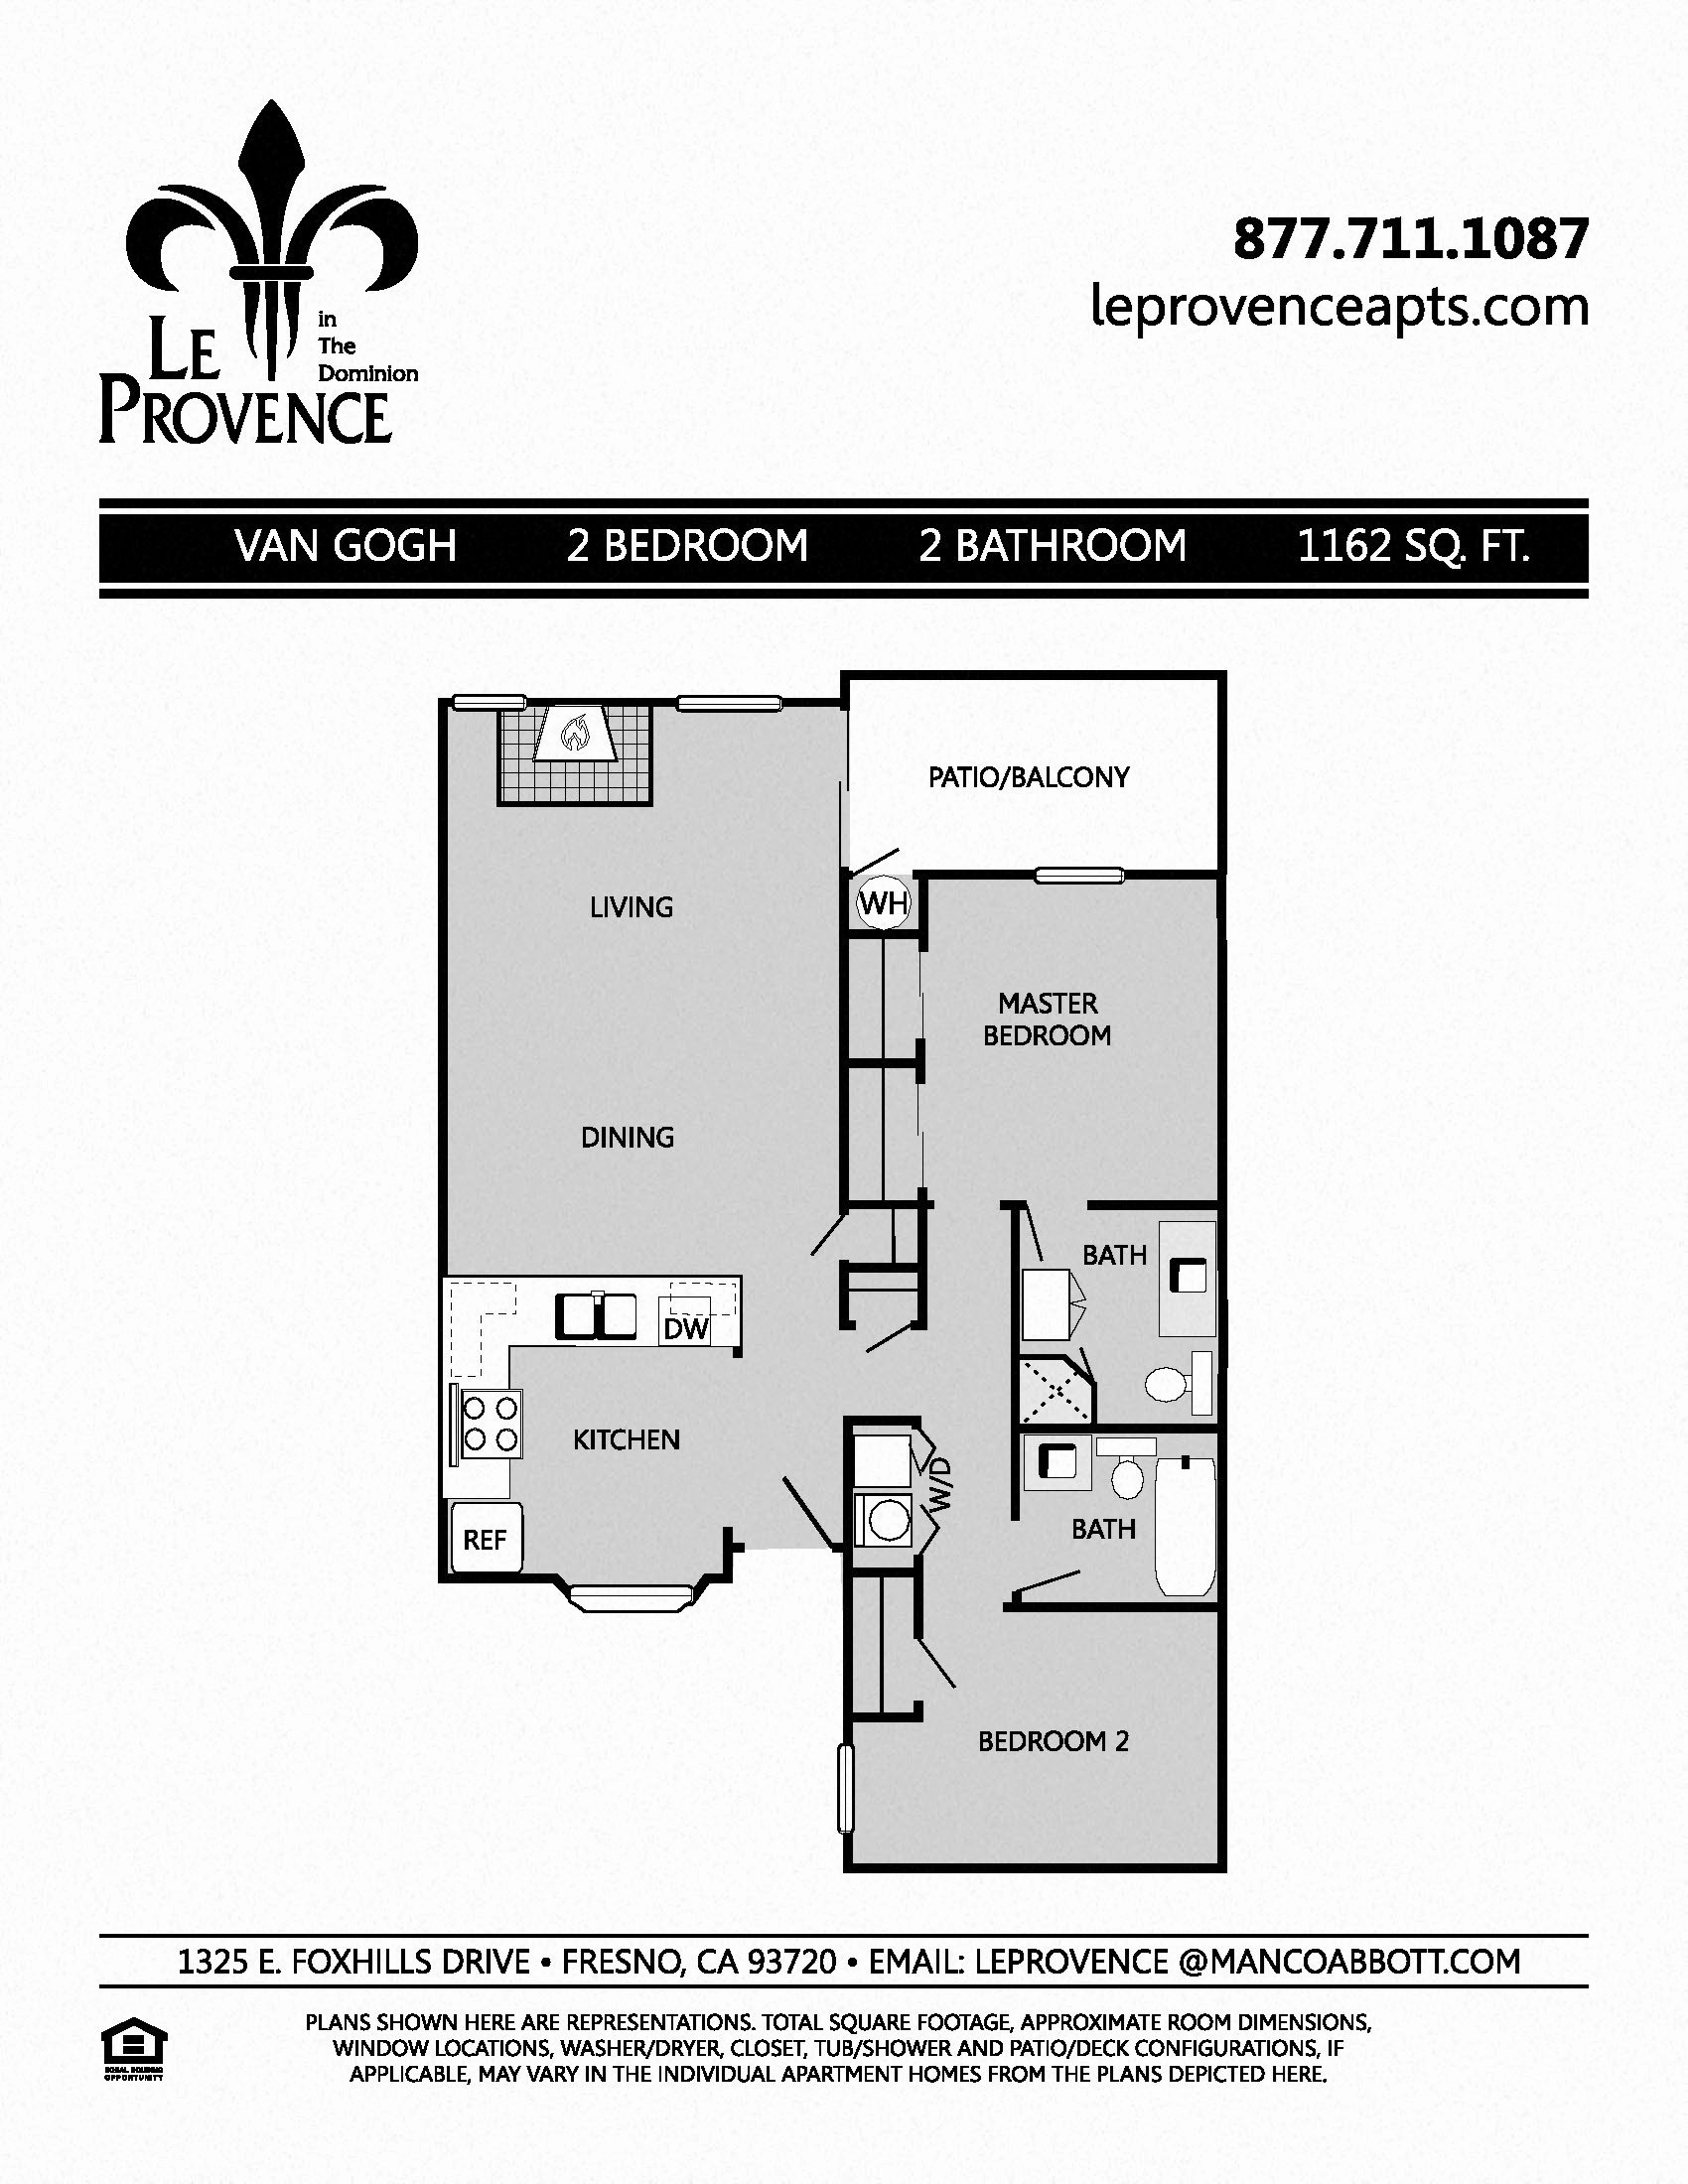 Van Gogh, Upstairs Floor Plan 5